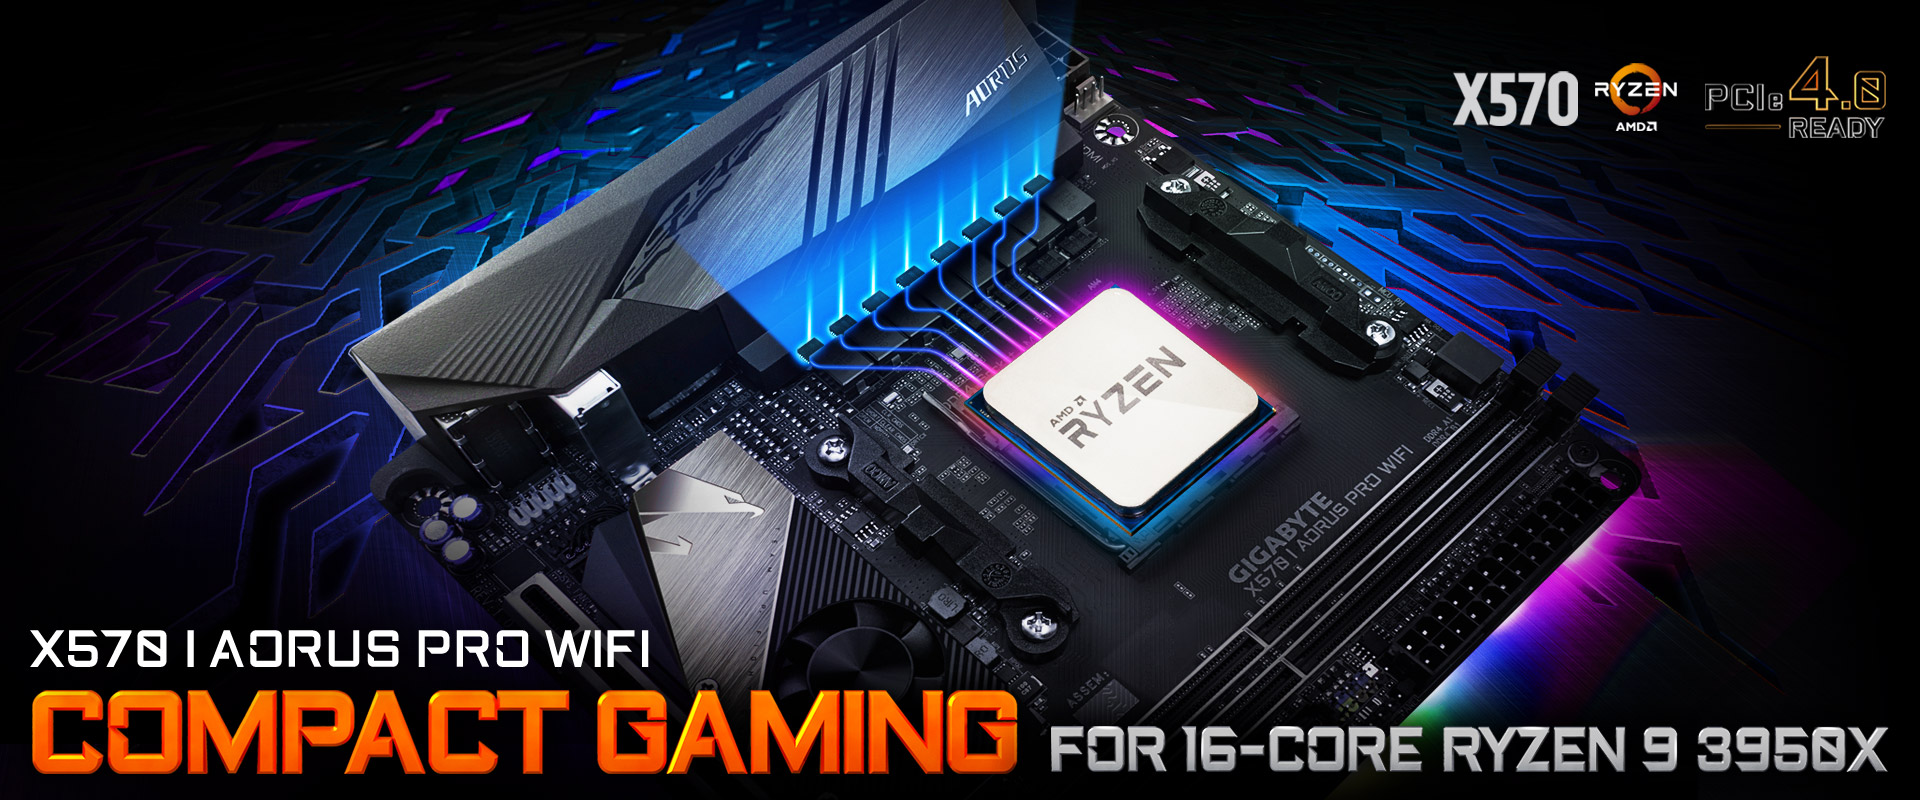 AORUS | Enthusiasts' Choice for PC gaming and esports